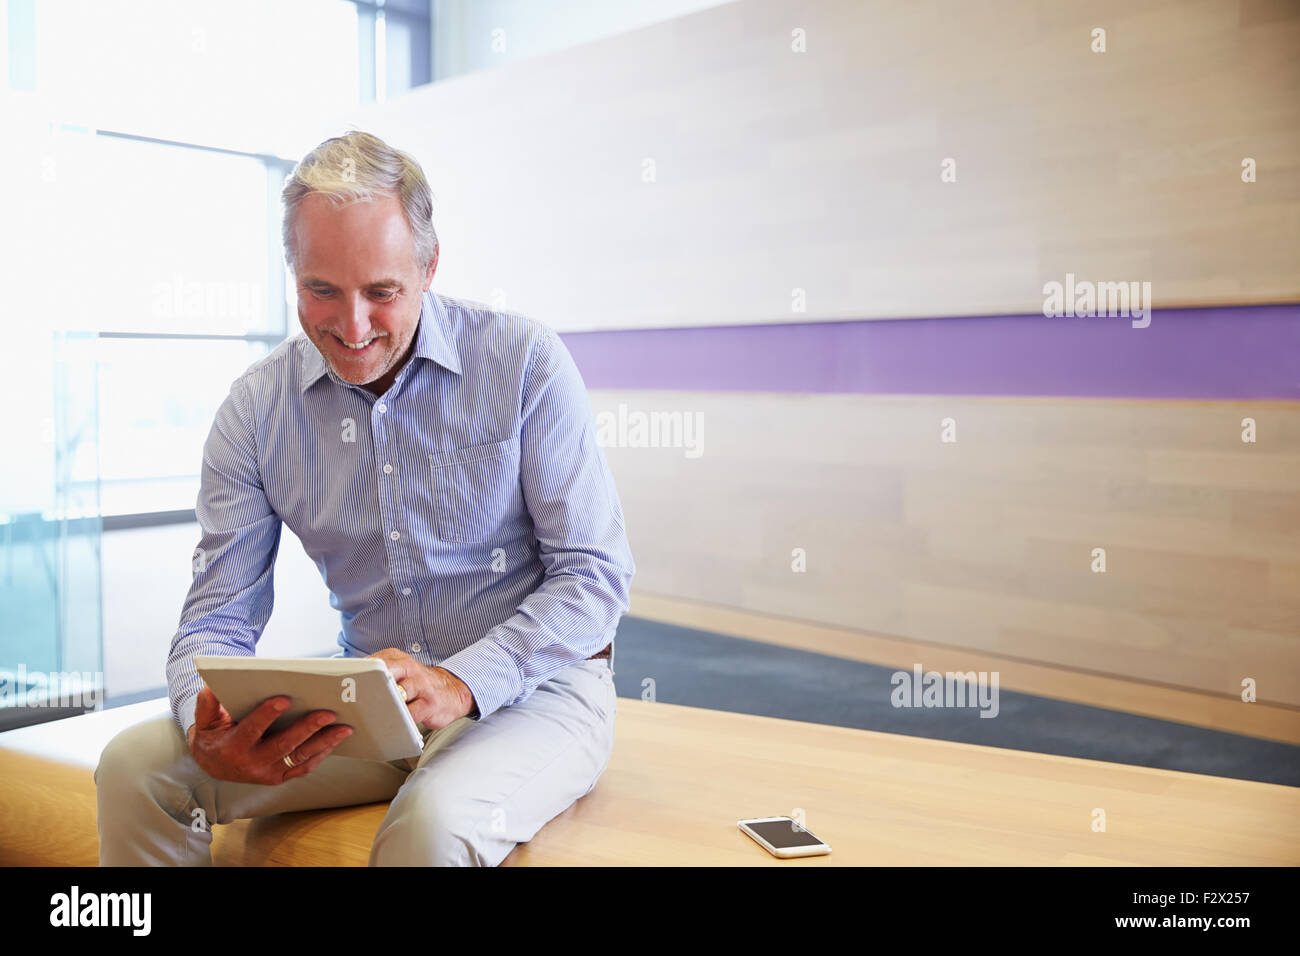 Smart casual senior man using tablet computer - Stock Image